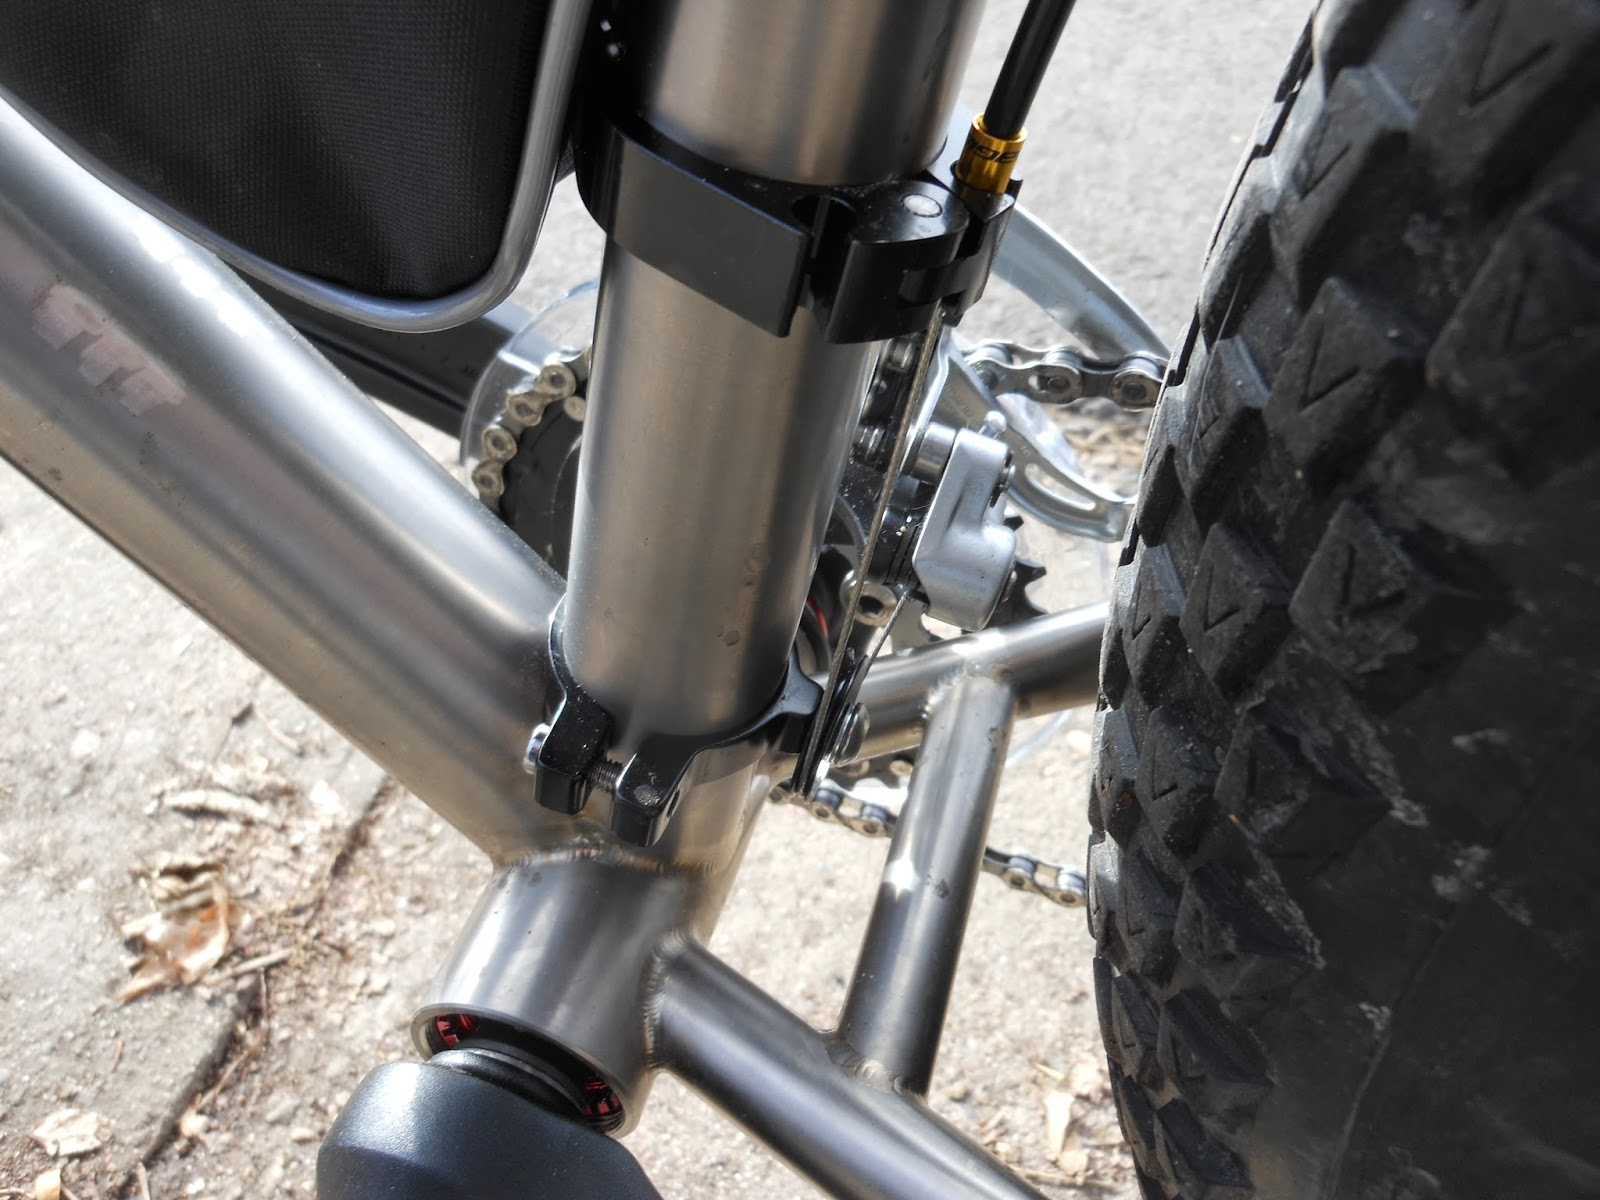 Two Wheels - Six Strings: More Work On The Fat Ti Bike, And a Trip ...